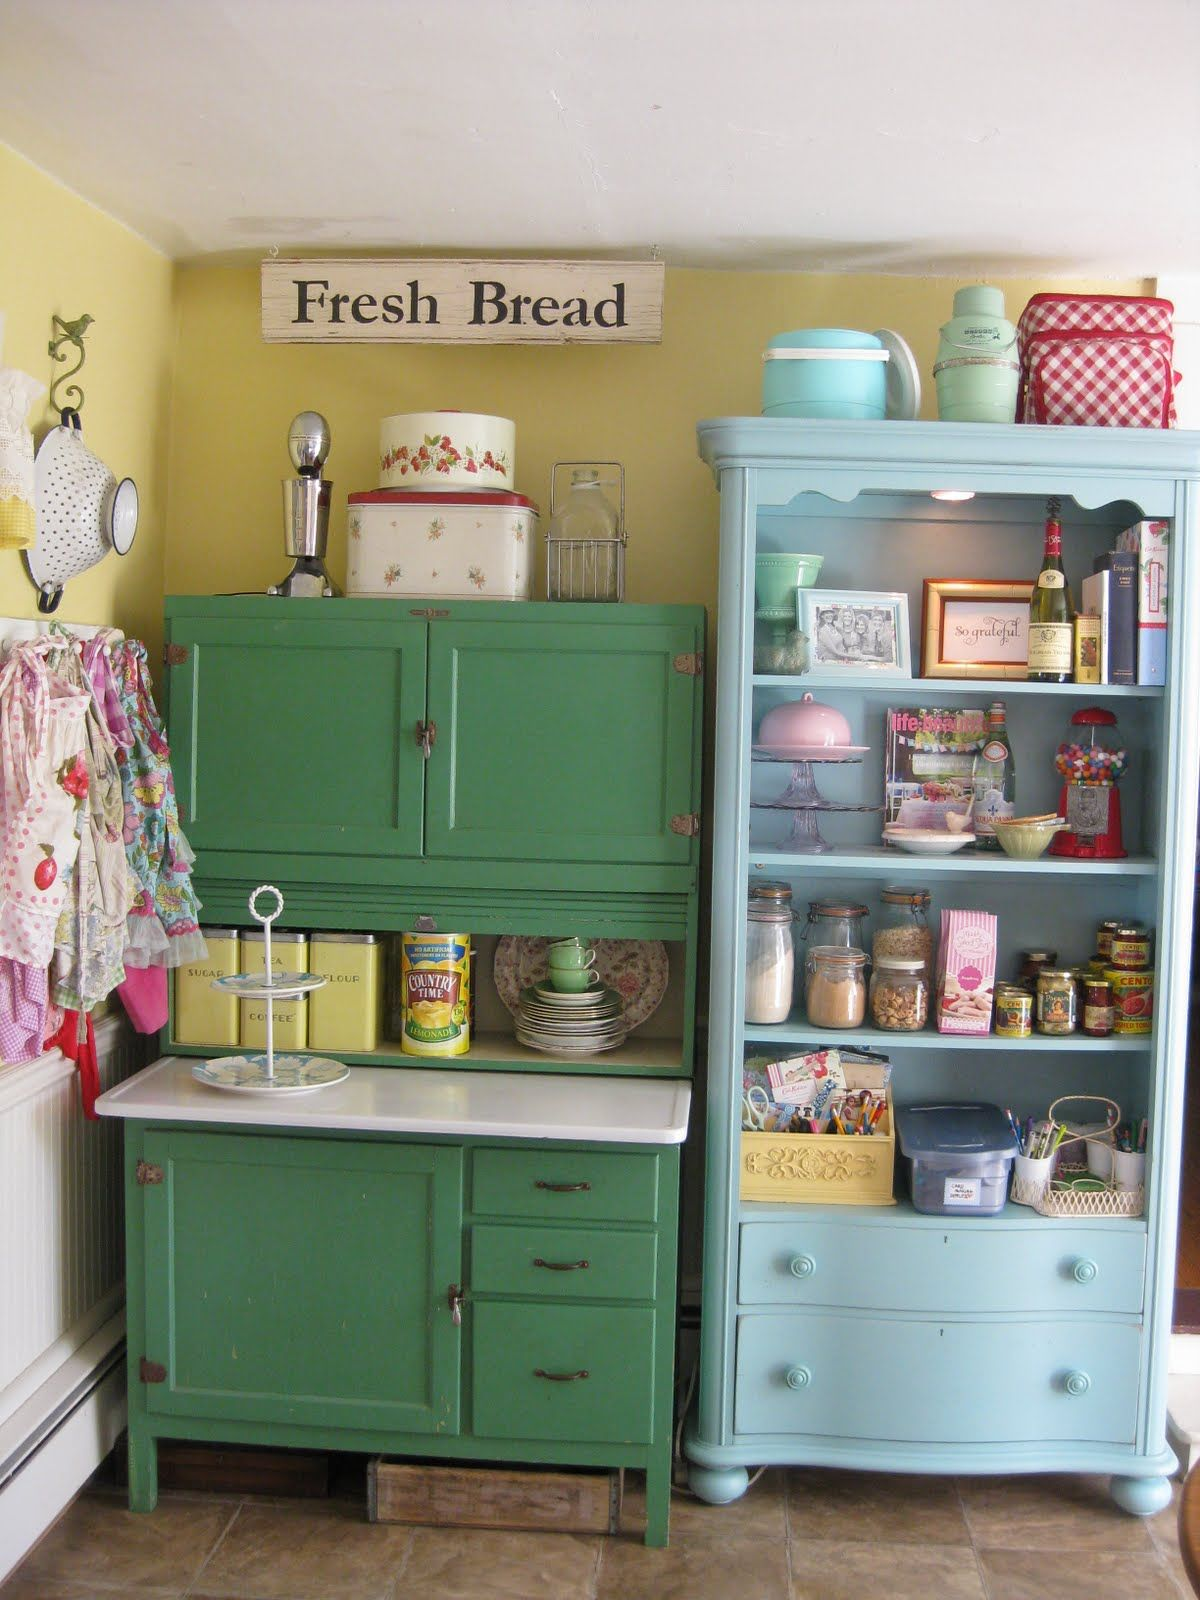 Colorful Vintage Kitchen Storage Ideas Pictures, Photos ...